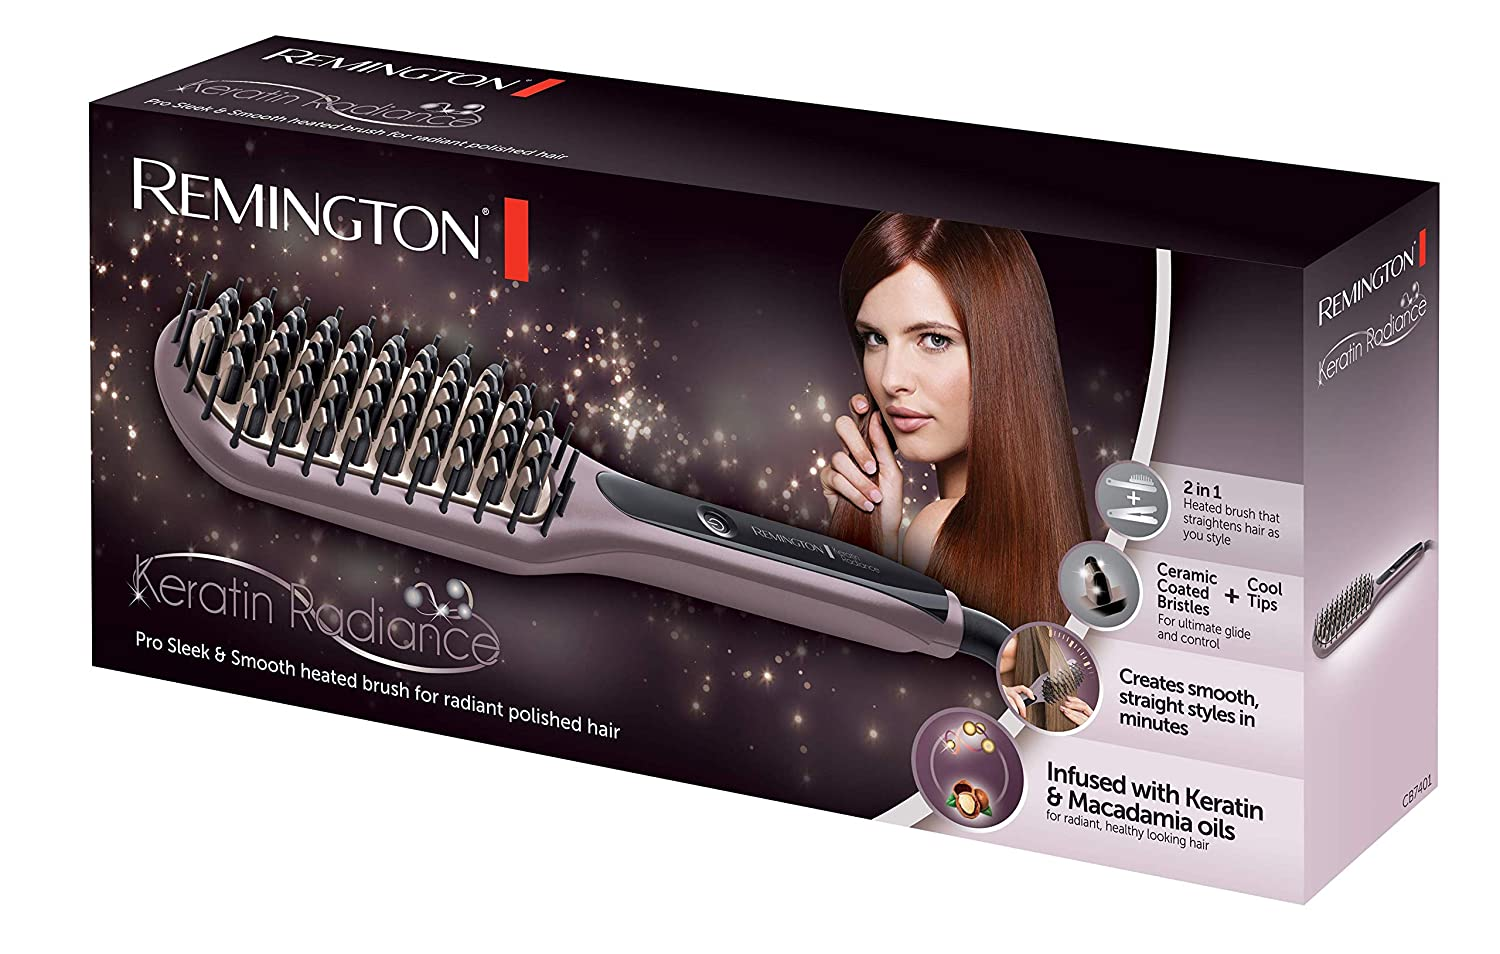 Remington Keratin Radiance Negro, Color blanco Intraaural Dentro de oído auricular: Amazon.es: Salud y cuidado personal